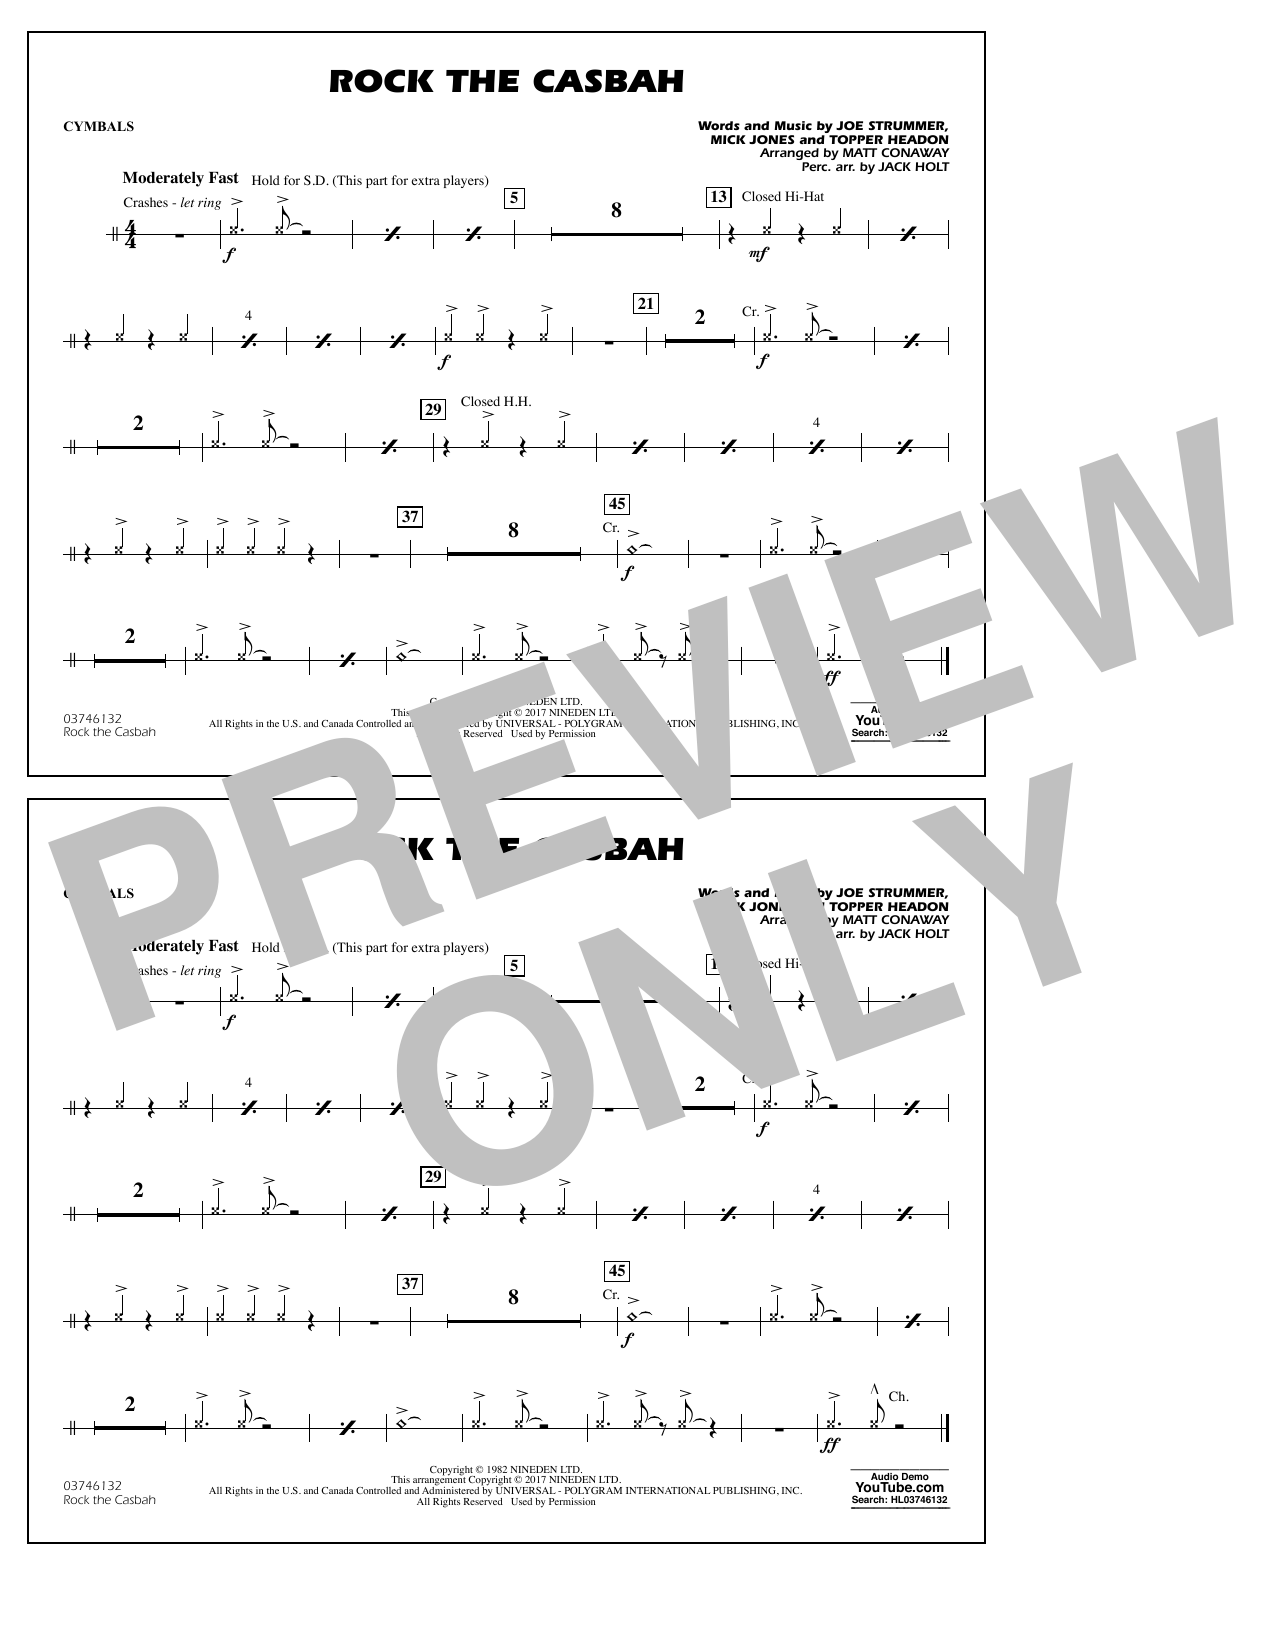 Rock the Casbah - Cymbals Sheet Music